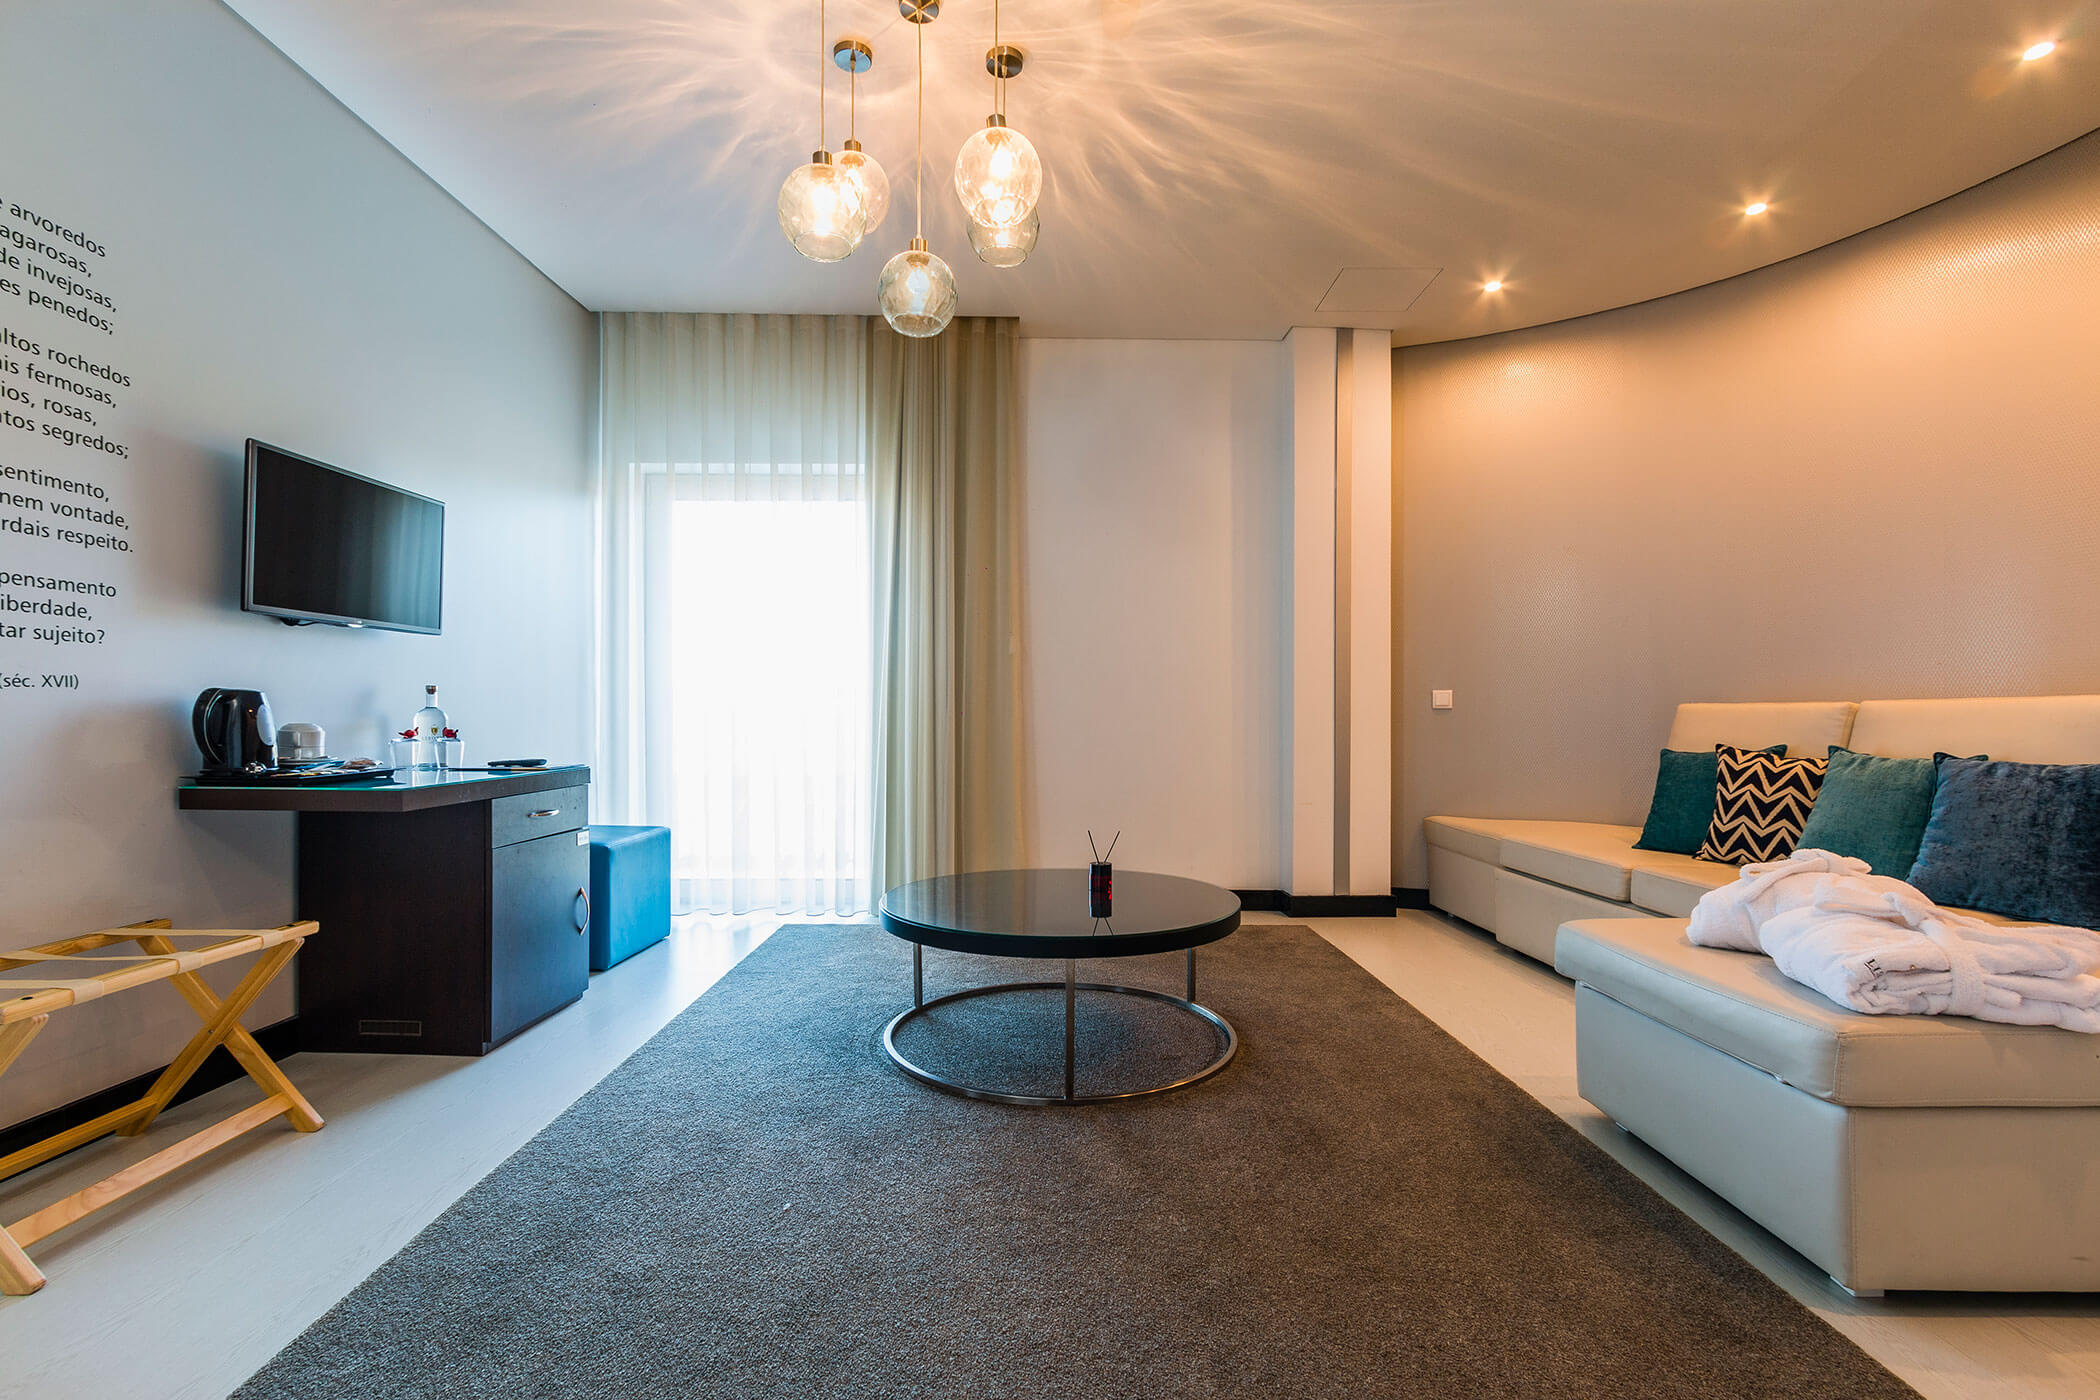 Rio Lis Suite, spacious living room with sofas and TV - Lisotel Hotel & Spa, Leiria